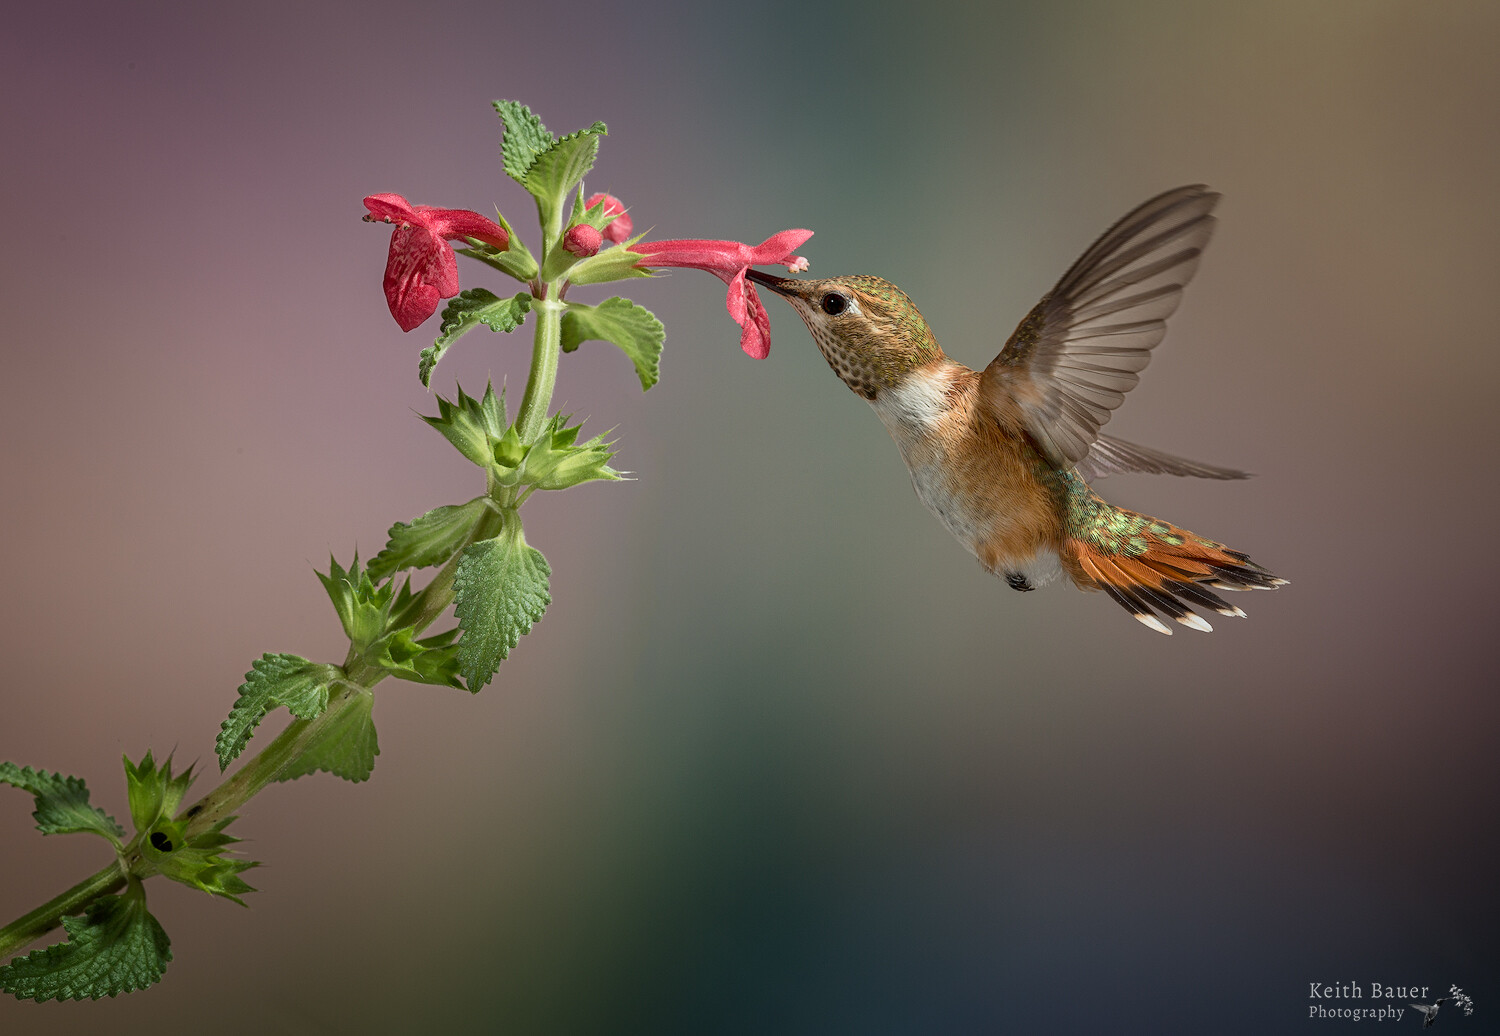 Special Guest Series- Photographing Hummingbirds with Keith Bauer